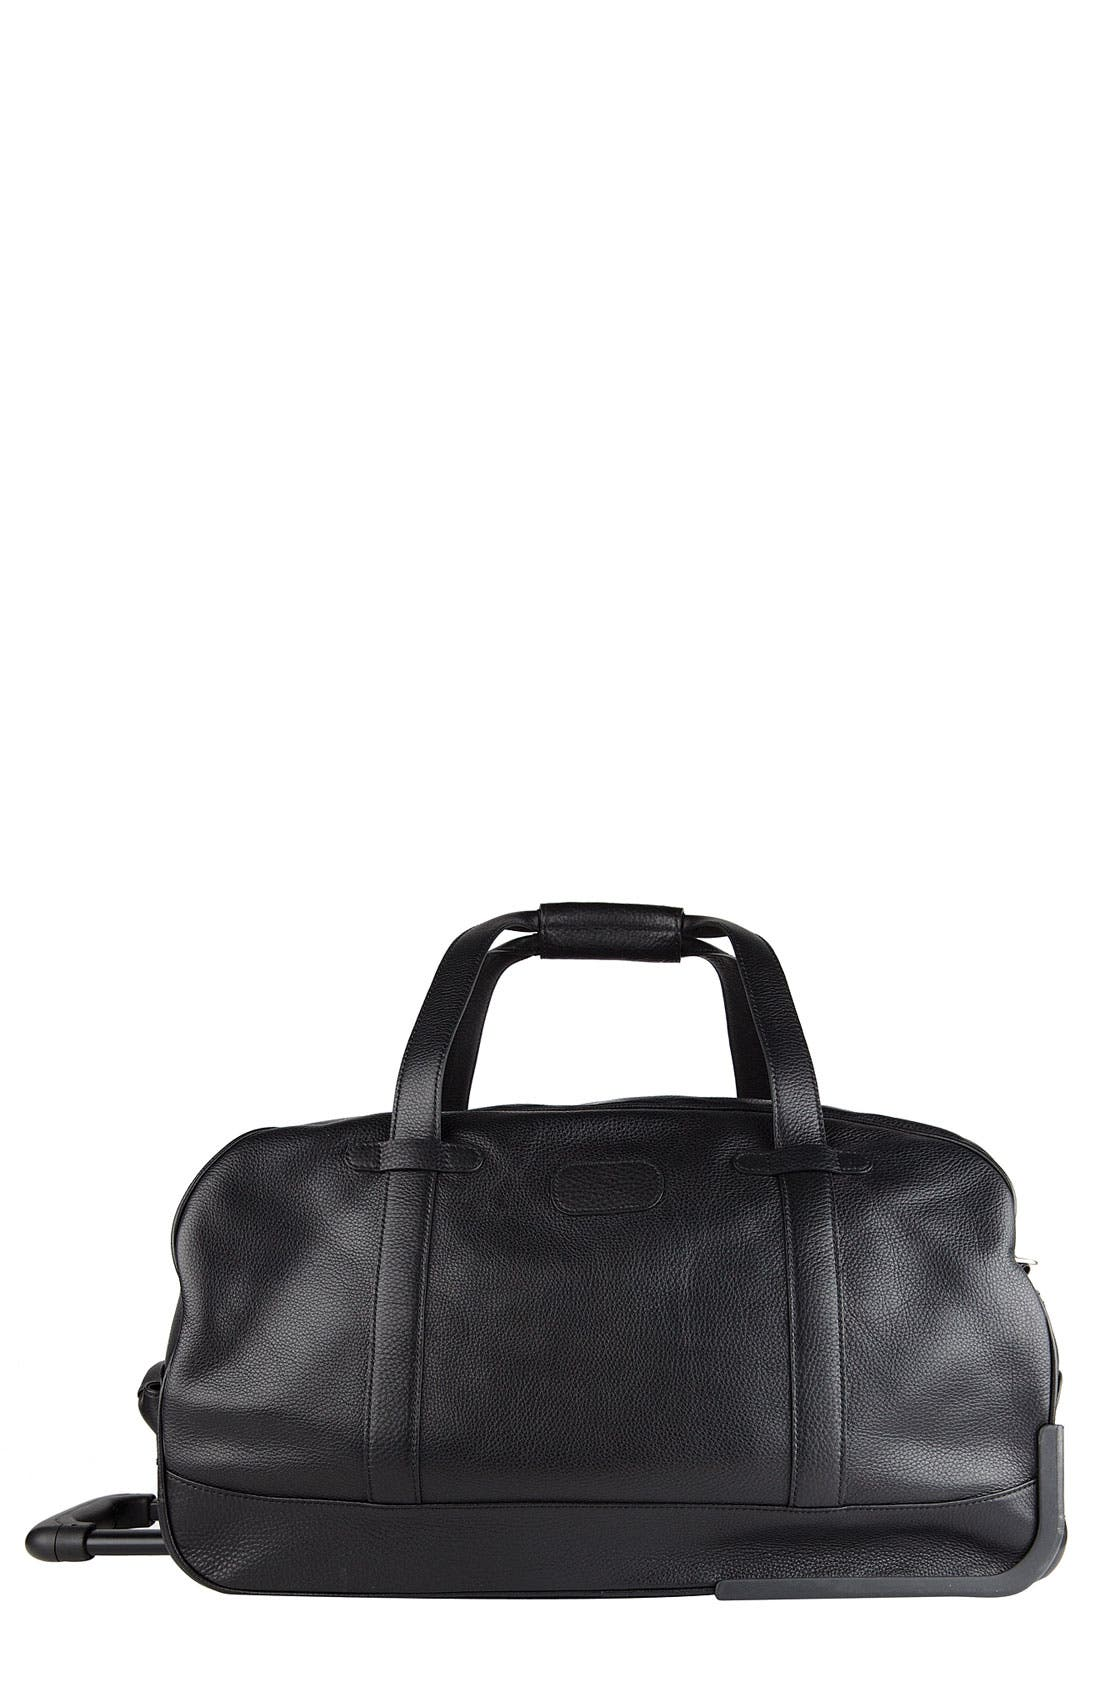 Main Image - Bosca 'Tribeca Collection' Wheeled Duffel Bag